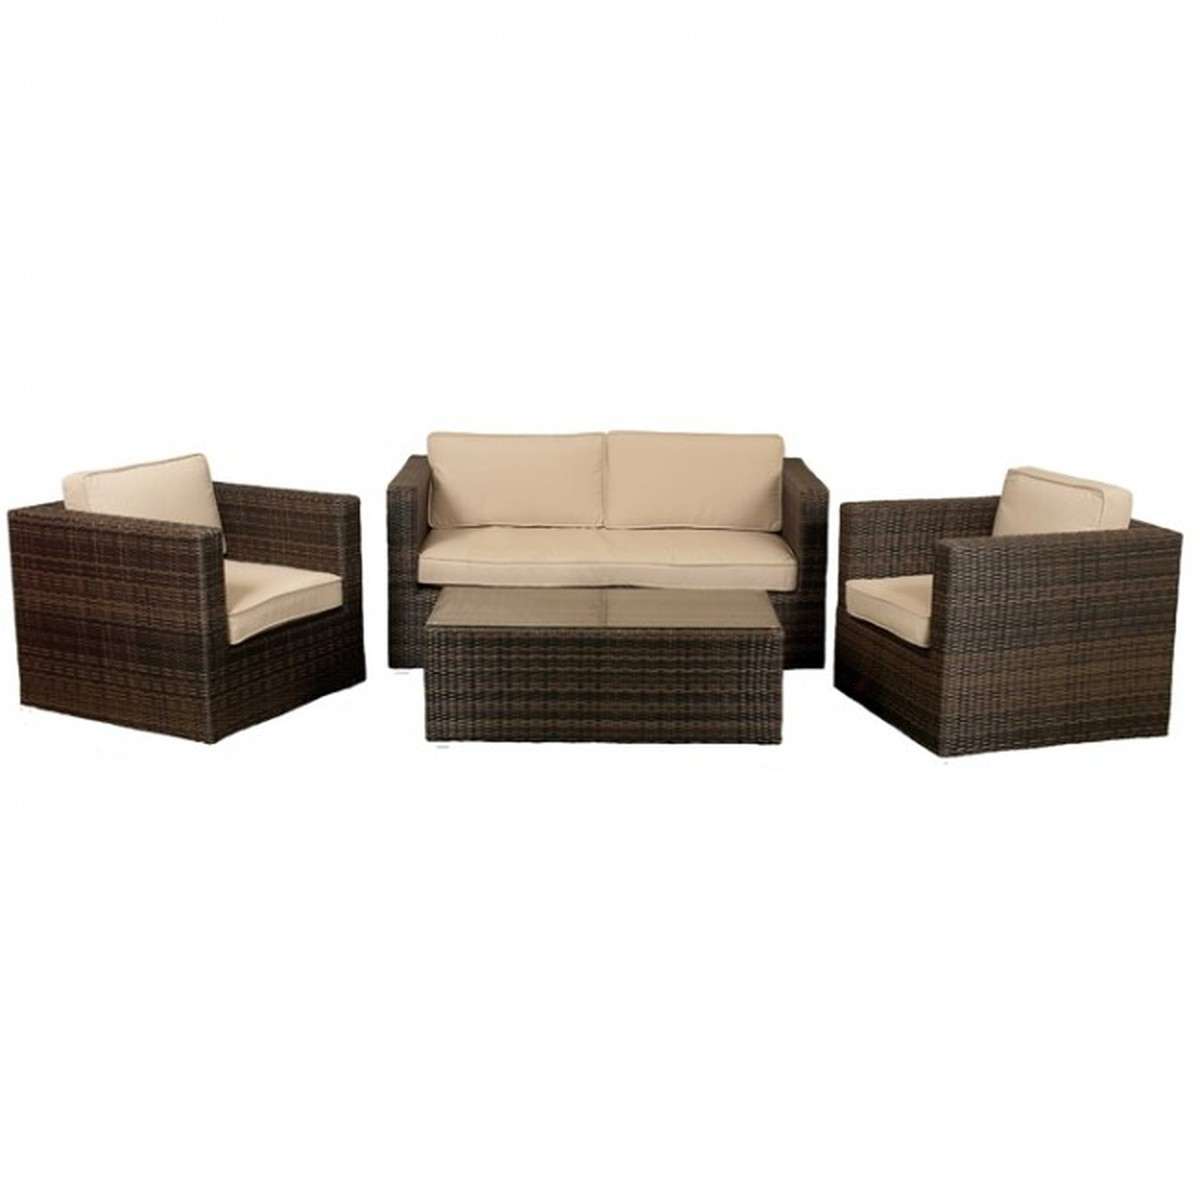 Furniture Clearance Miami: Mayfair Furniture & Caterfair